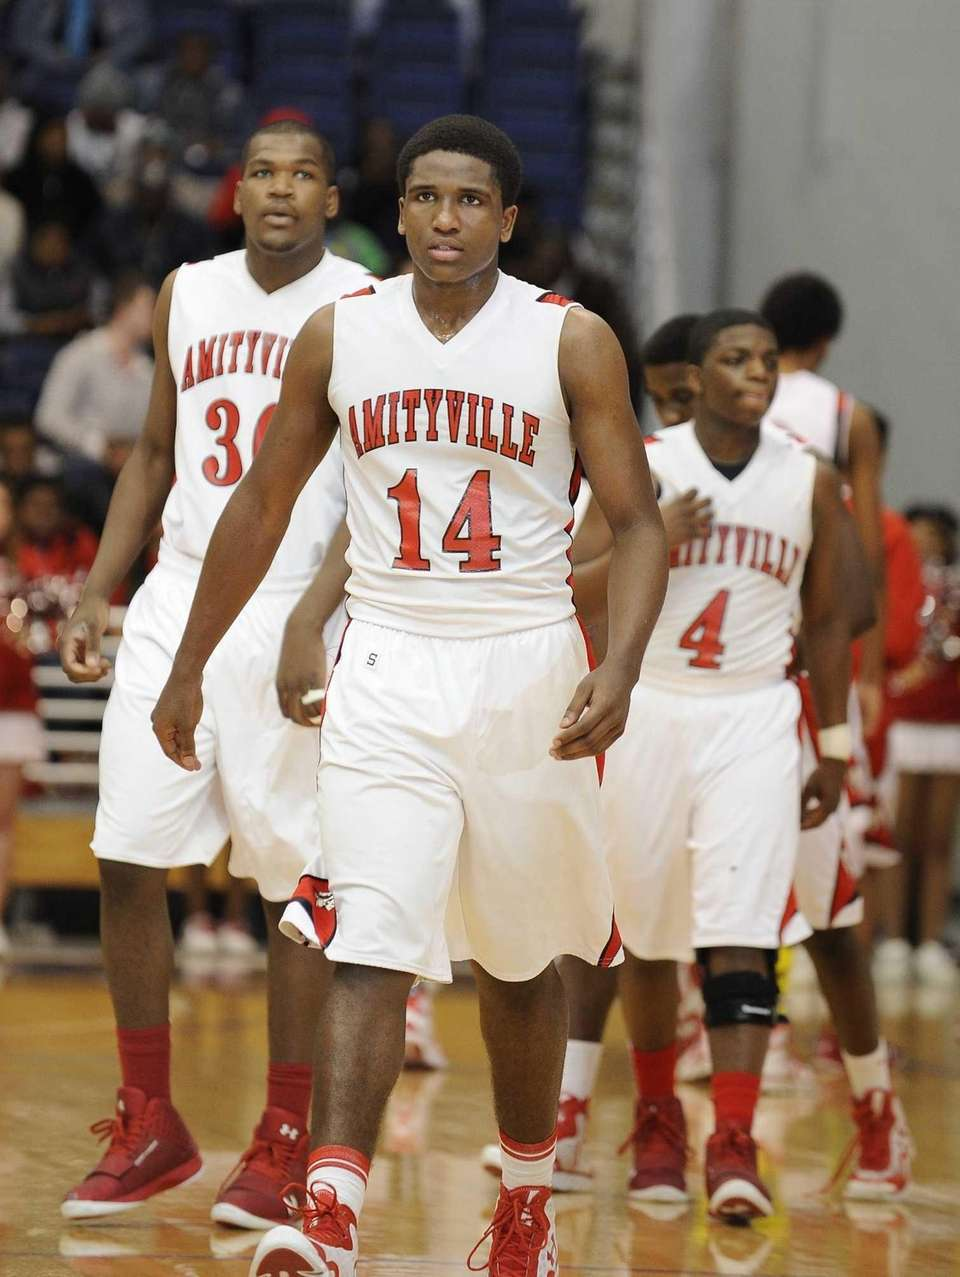 Amityville's Kavione Green leads his team back on